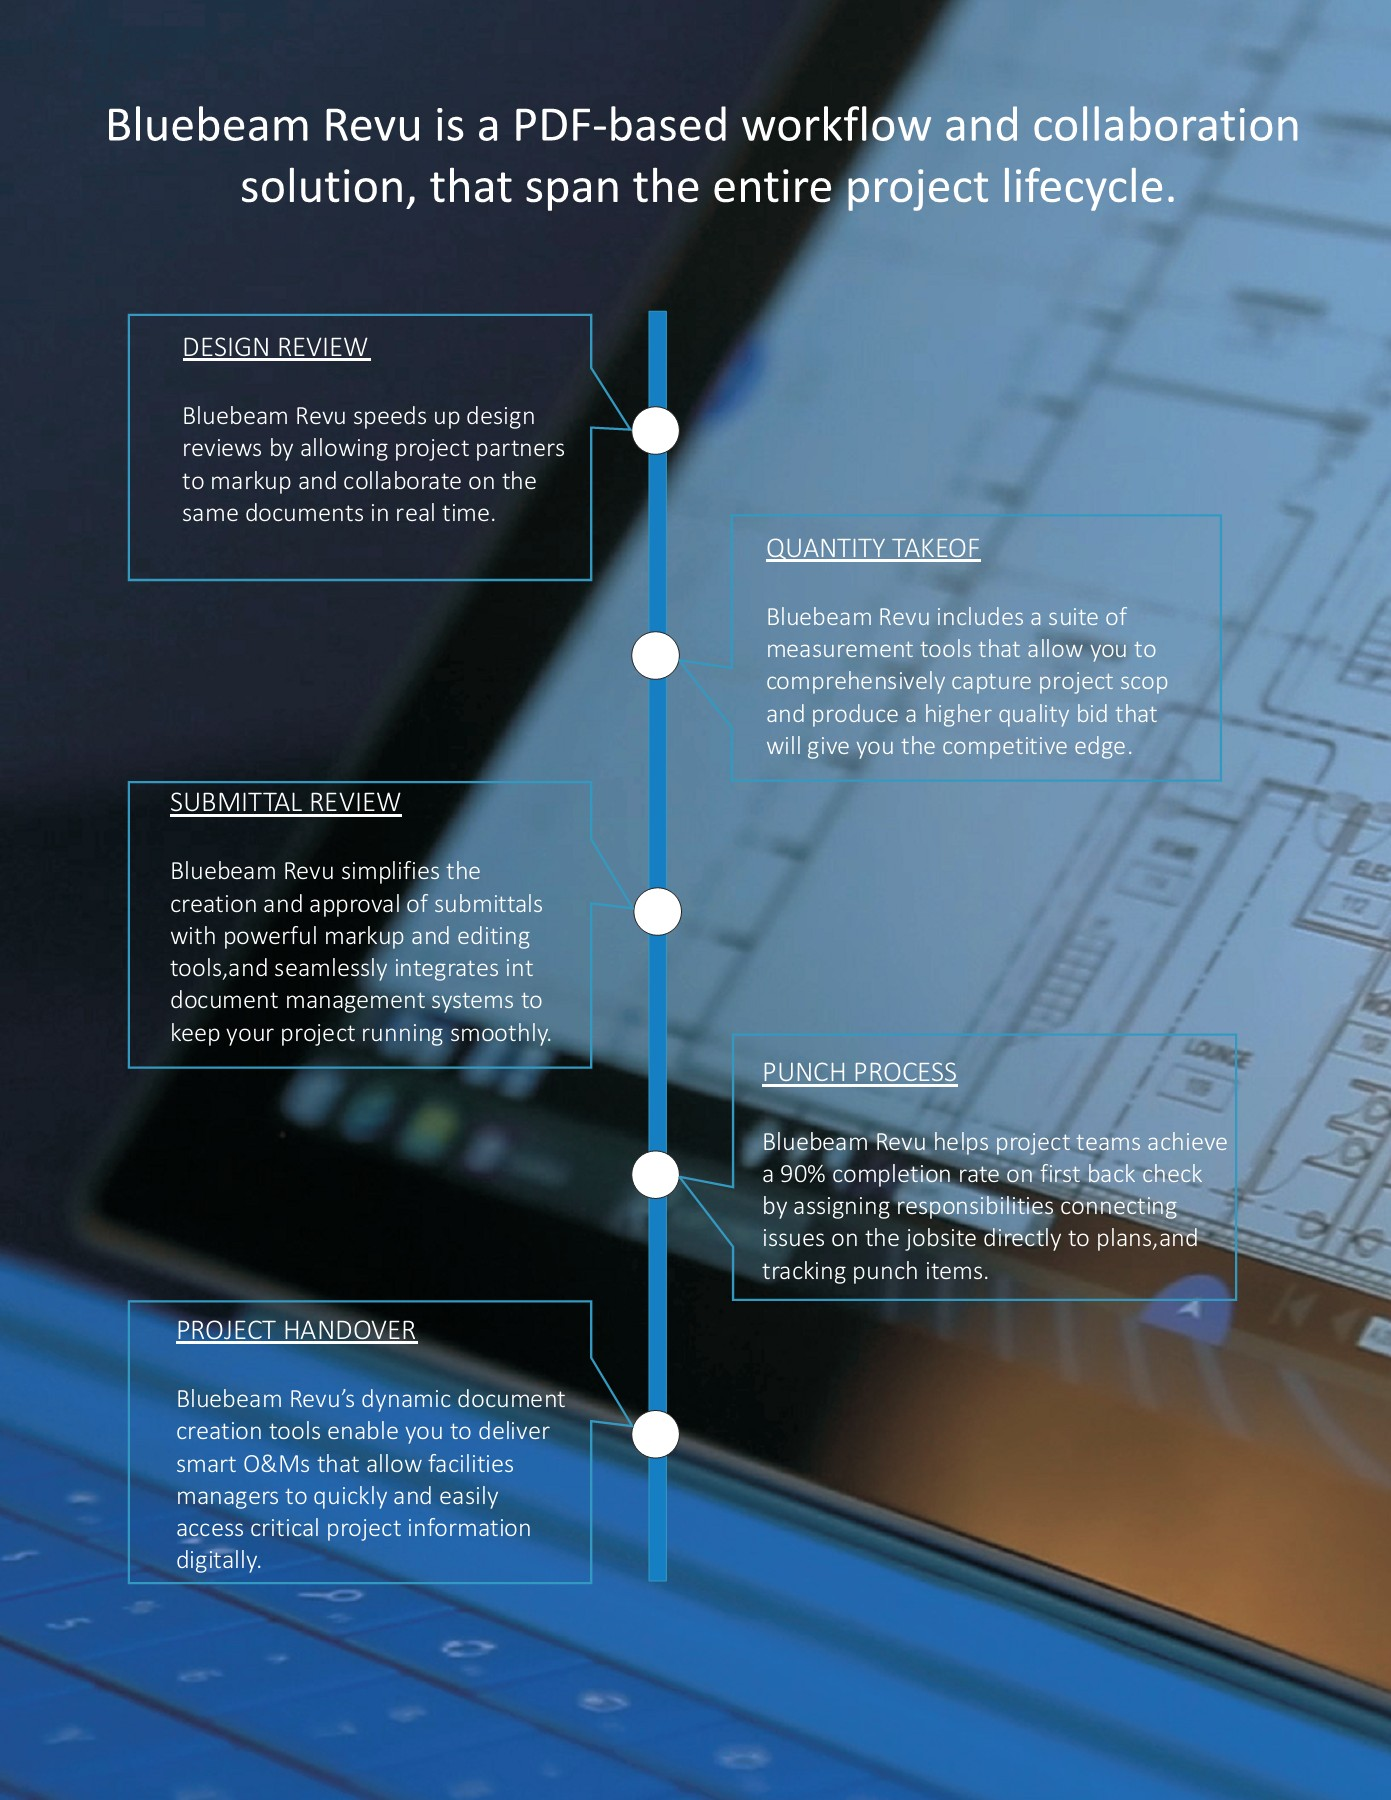 Bluebeam-Brochure-2017 Pages 1 - 12 - Text Version | AnyFlip